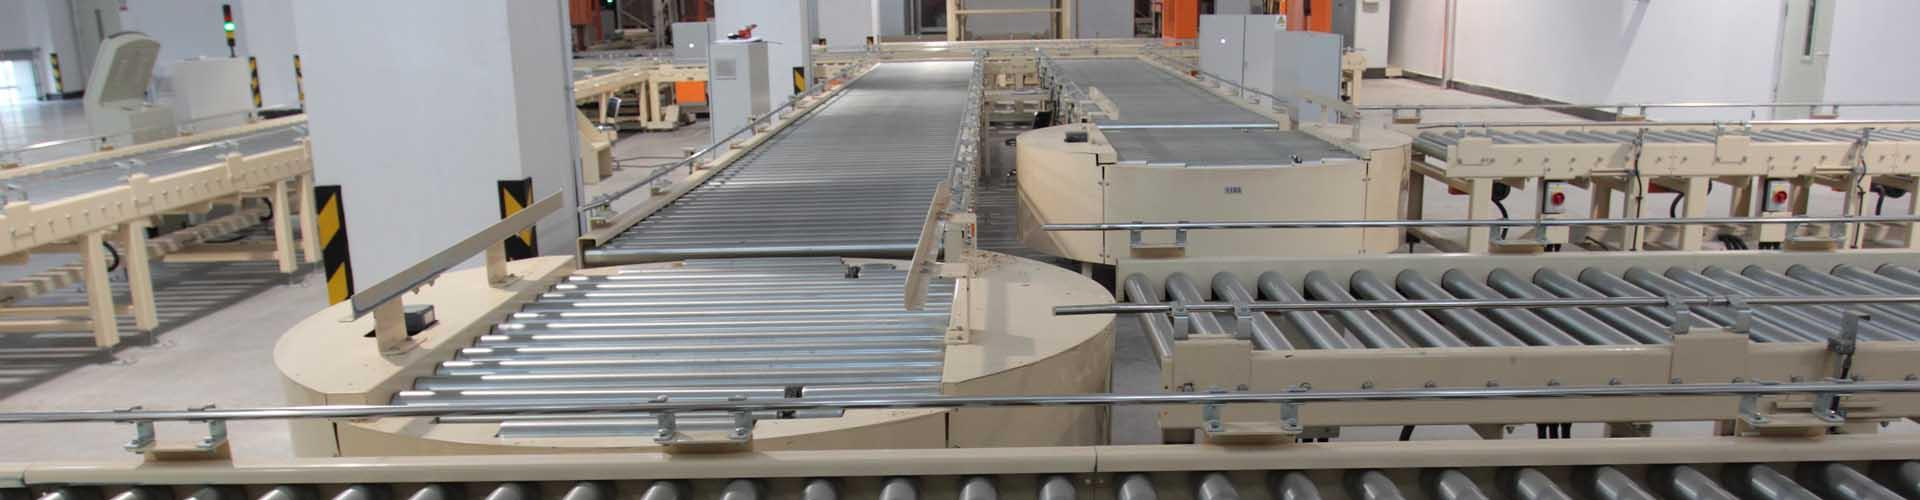 Pallet Conveyor Turntable